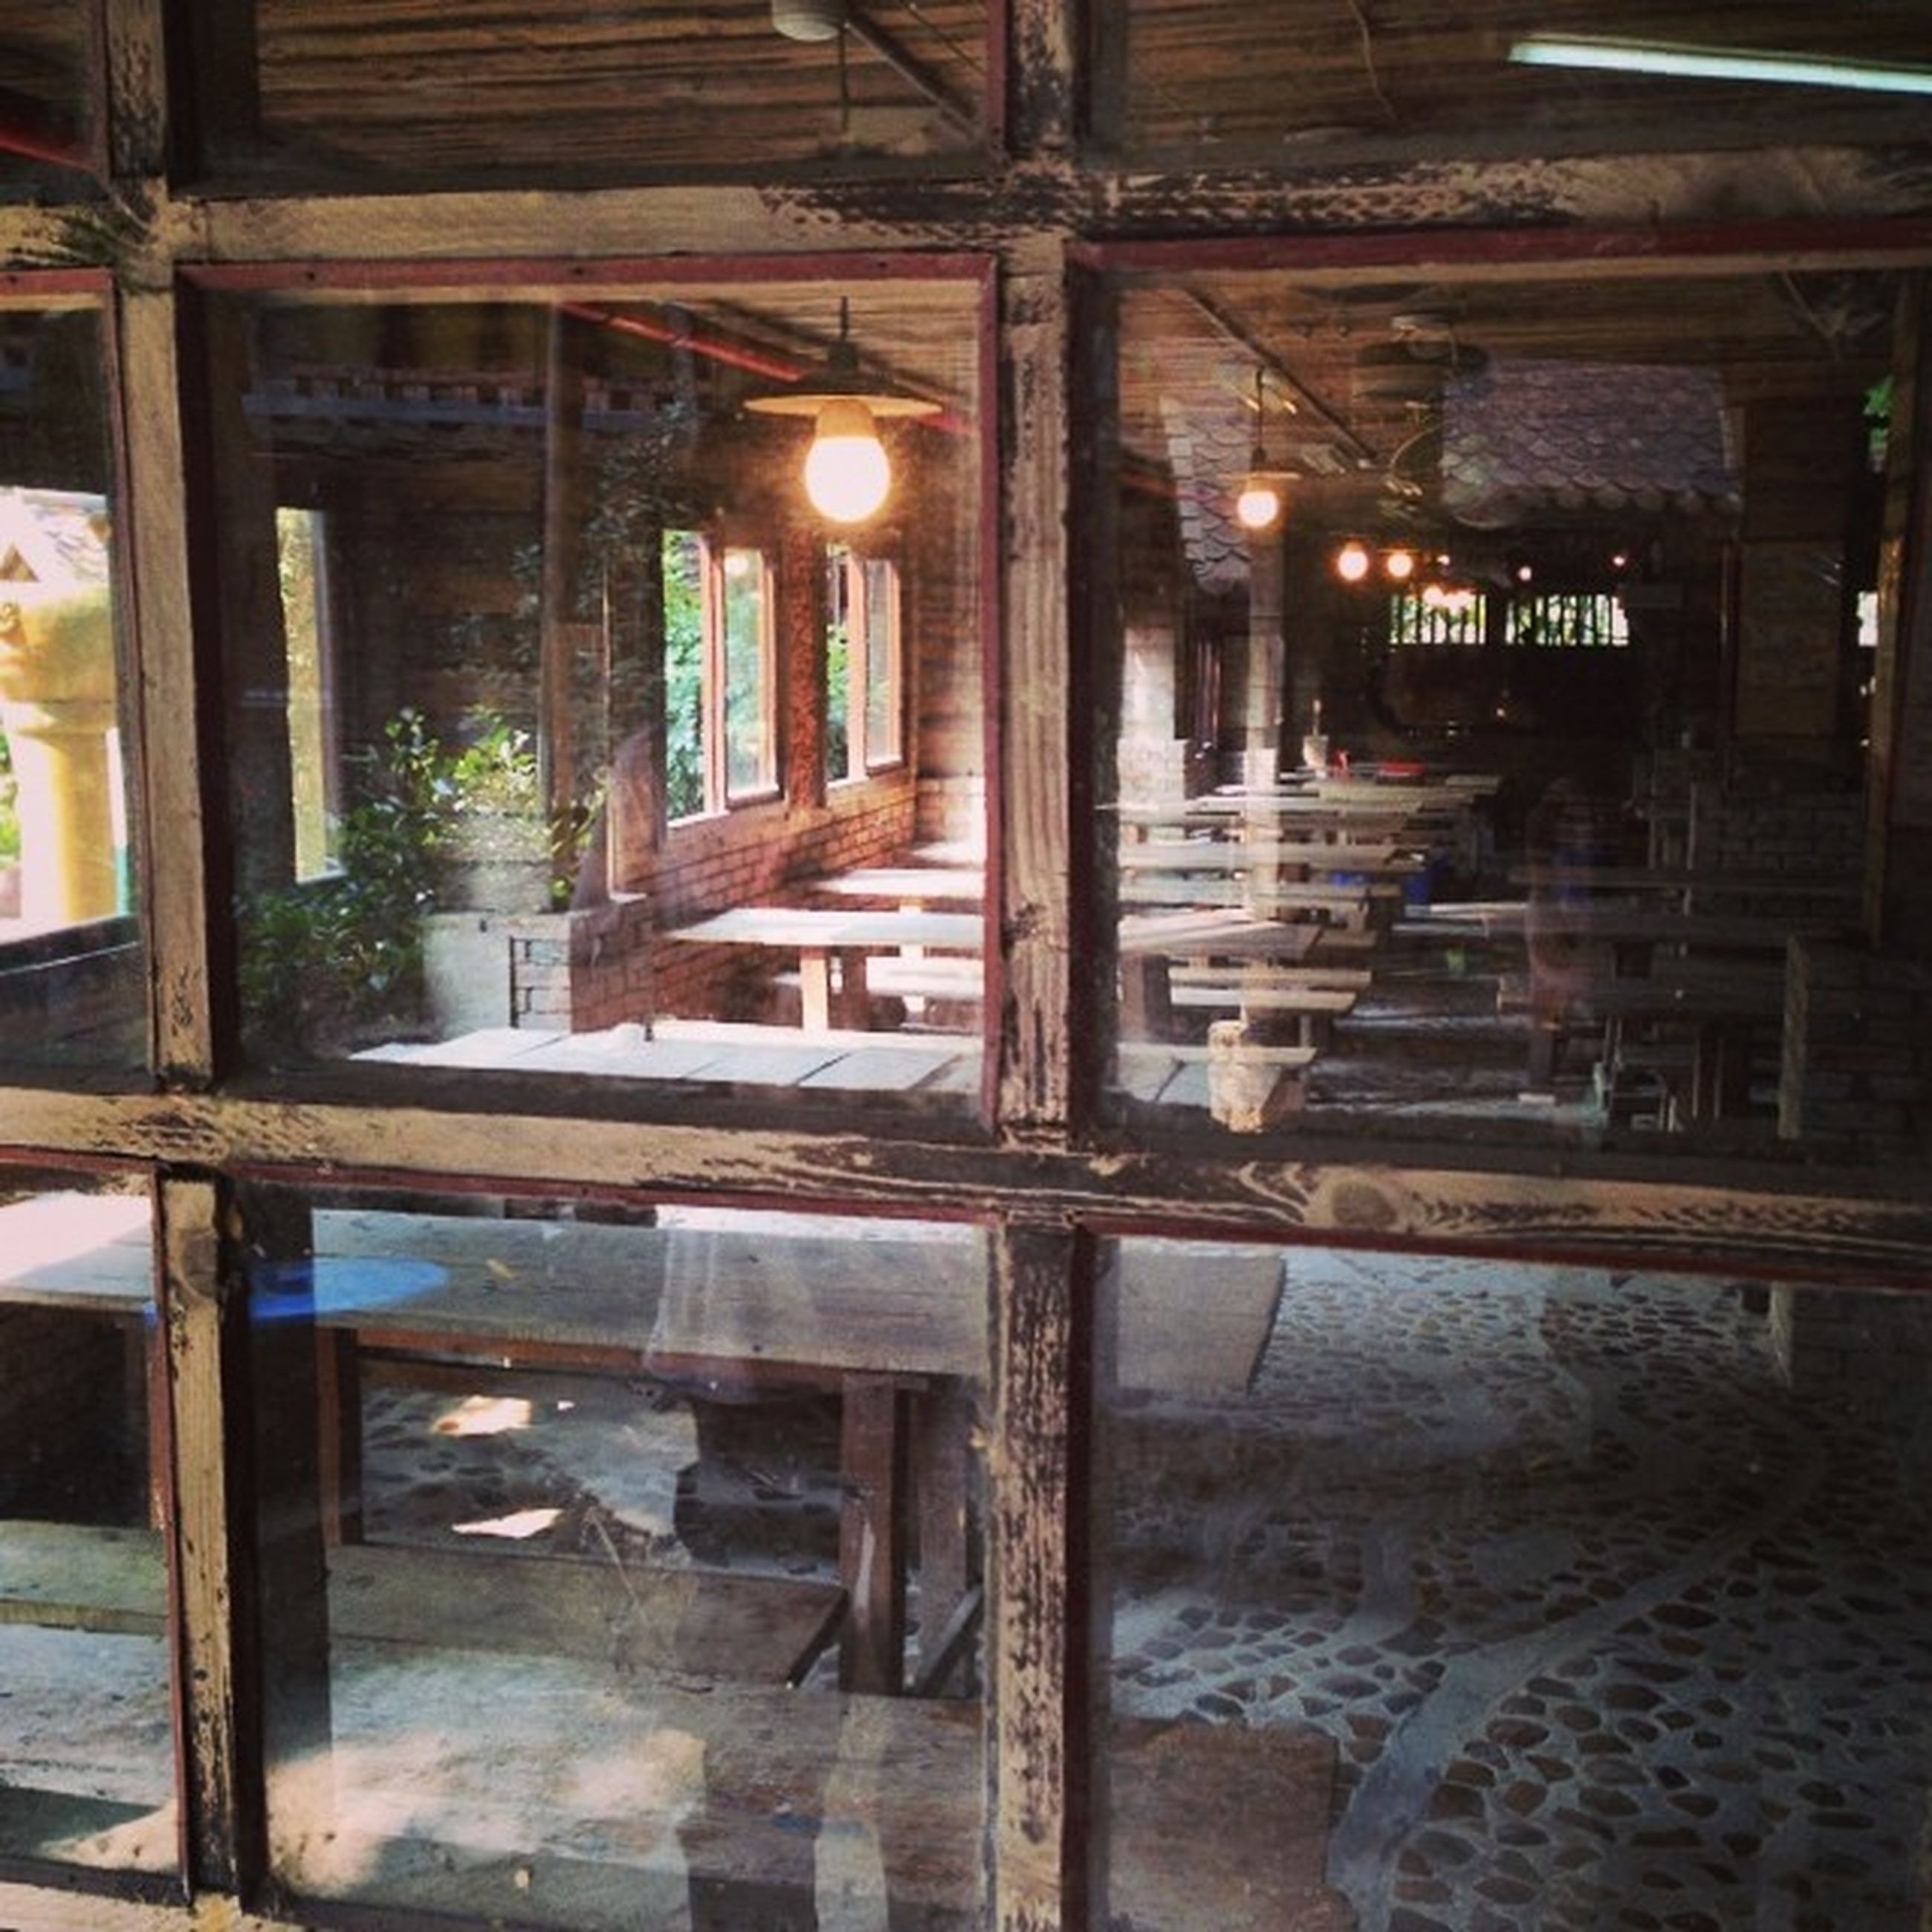 indoors, built structure, architecture, window, interior, reflection, abandoned, old, glass - material, obsolete, empty, damaged, wood - material, absence, architectural column, no people, run-down, building, building exterior, day